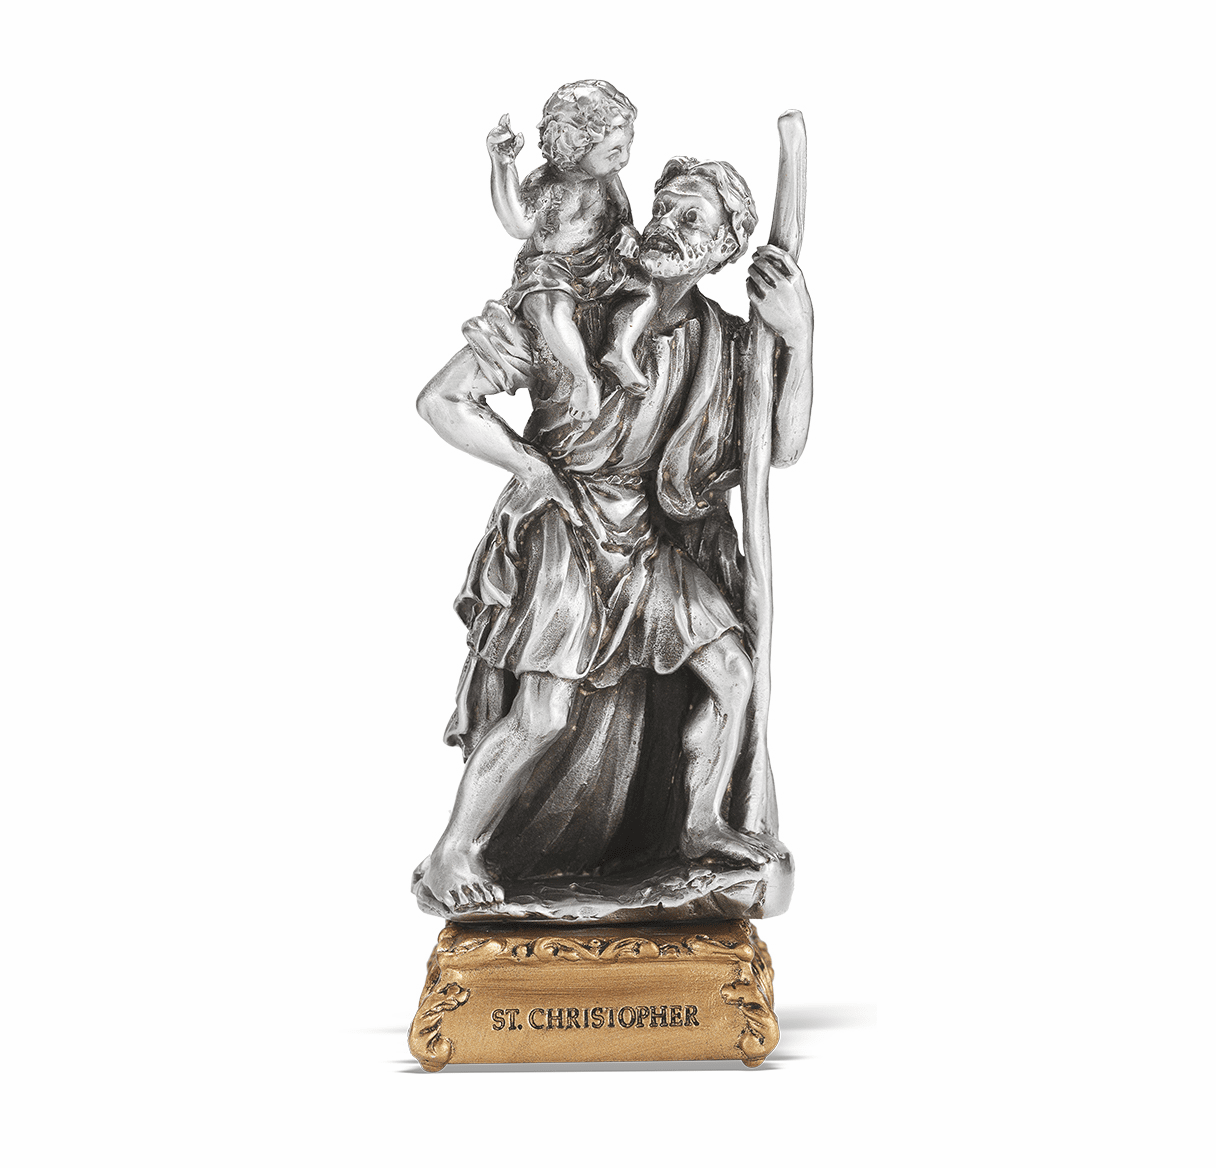 St Christopher Patron Saint Pewter Statue on Gold Tone Base by Hirten